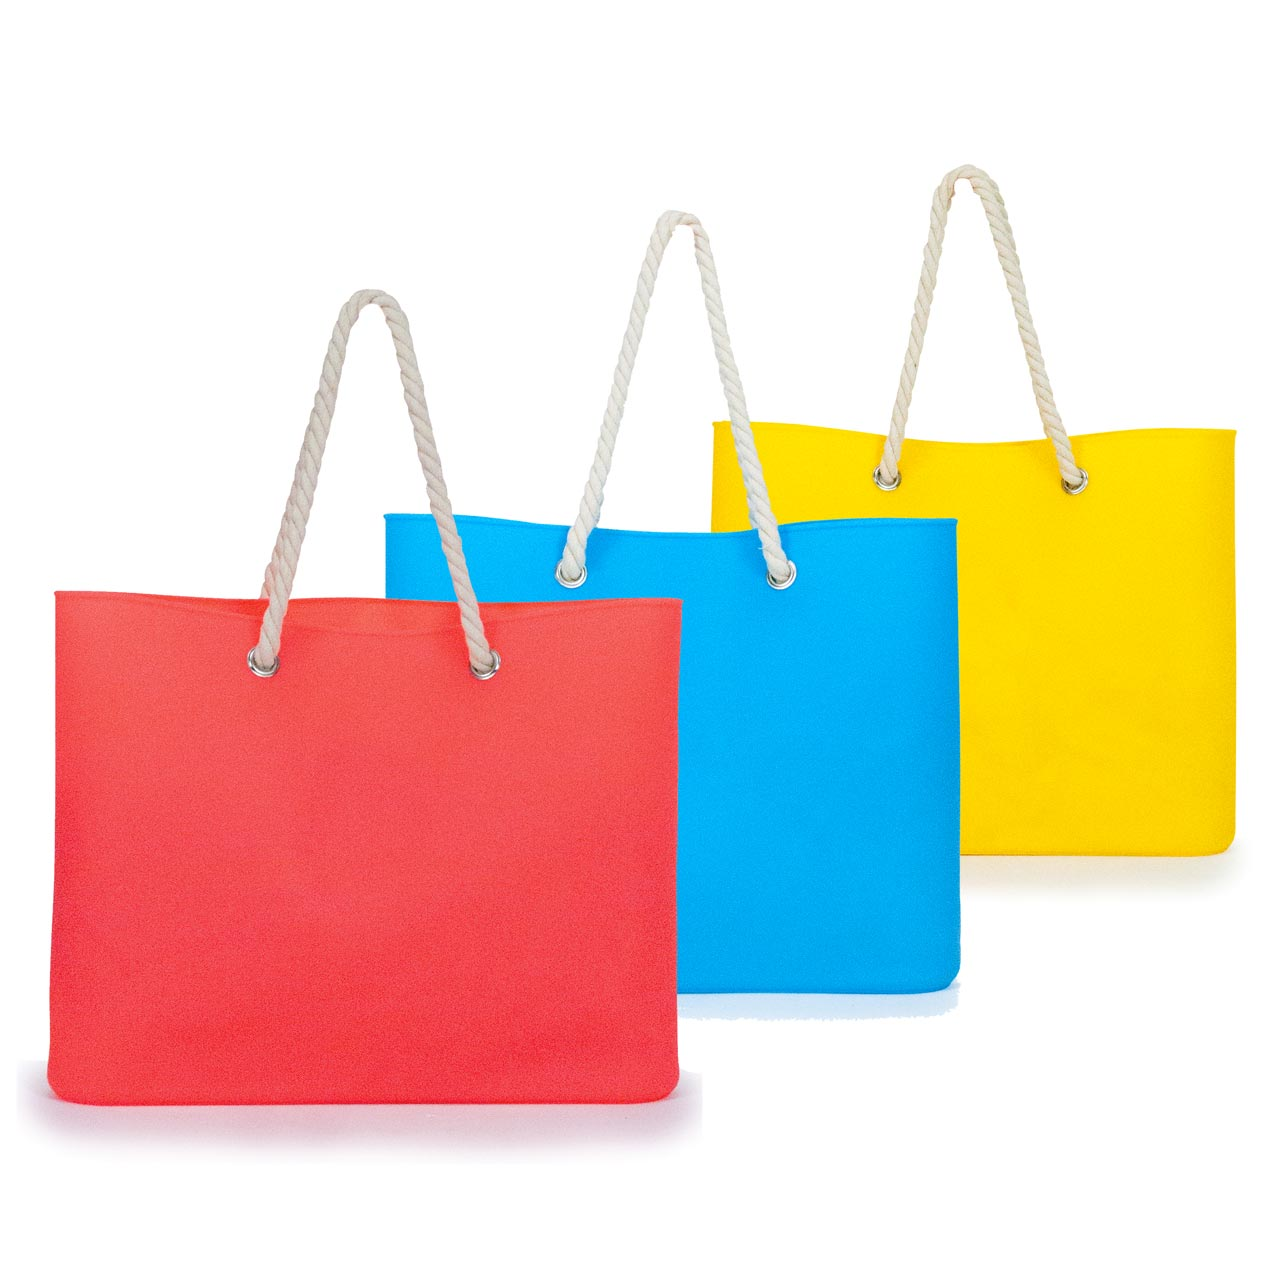 Jelly Tote Silicone in Blue, Red or Yellow | The Design Gift Shop